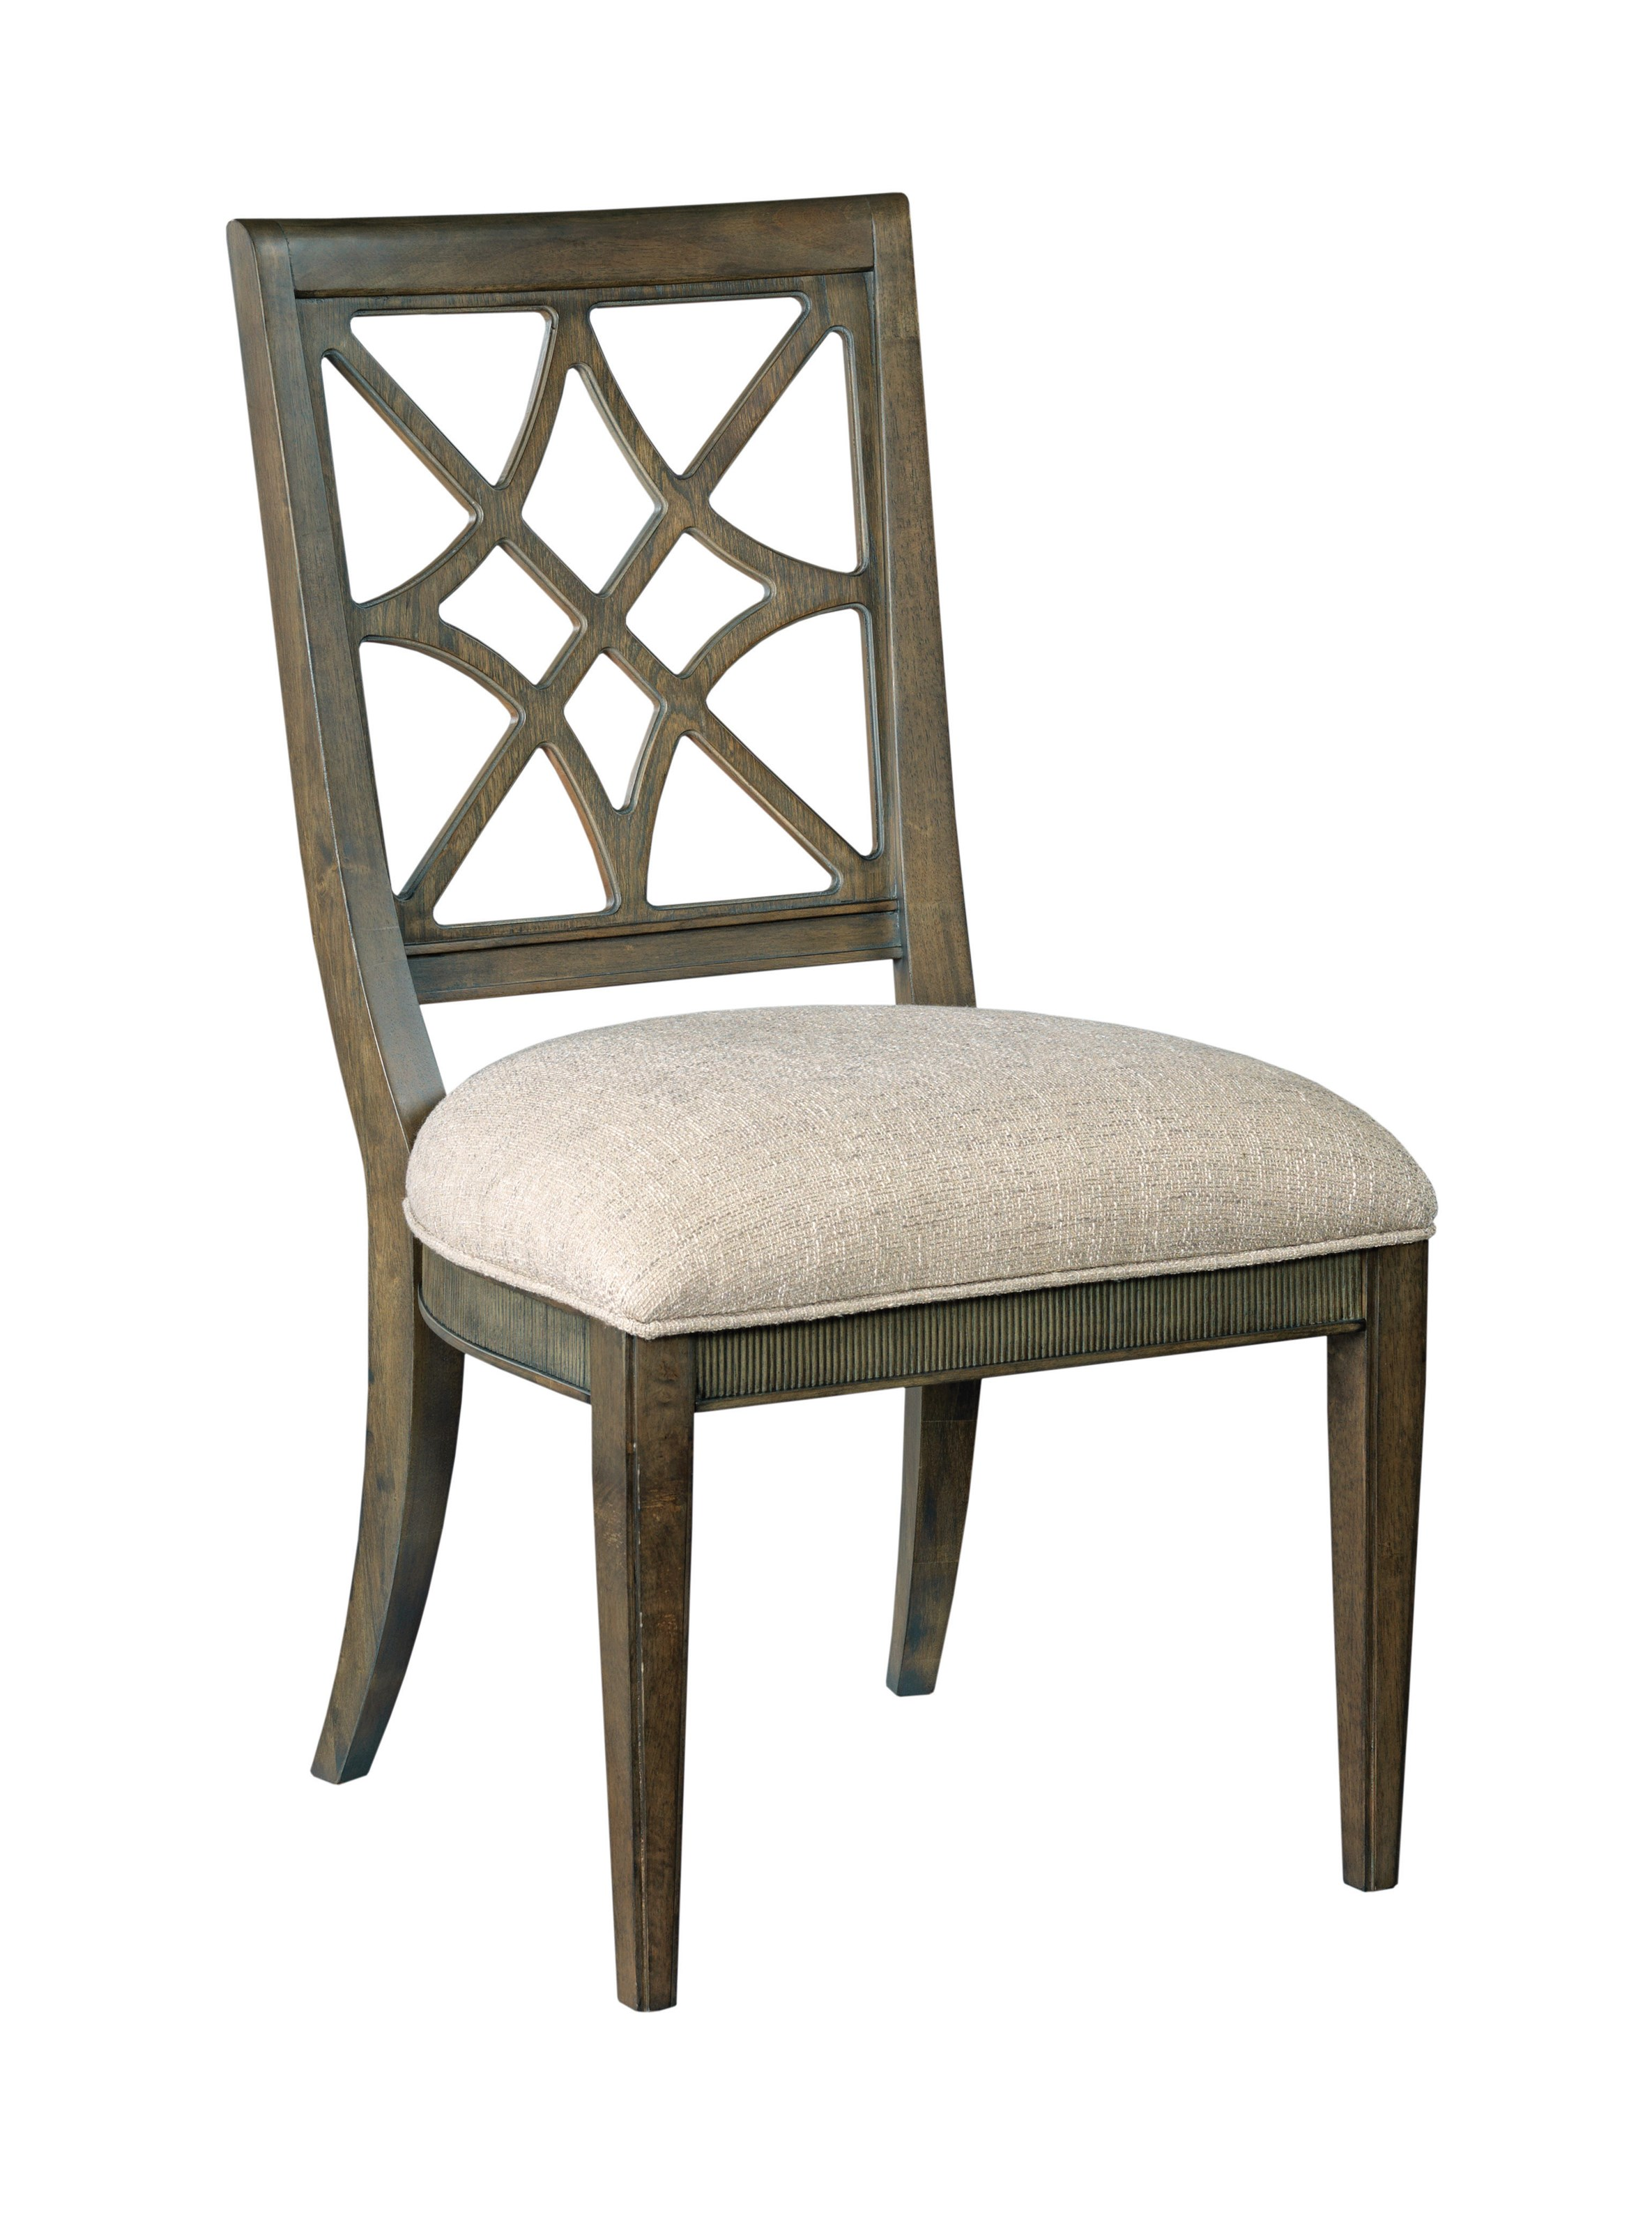 Salina Salina Side Chair by American Drew at Morris Home